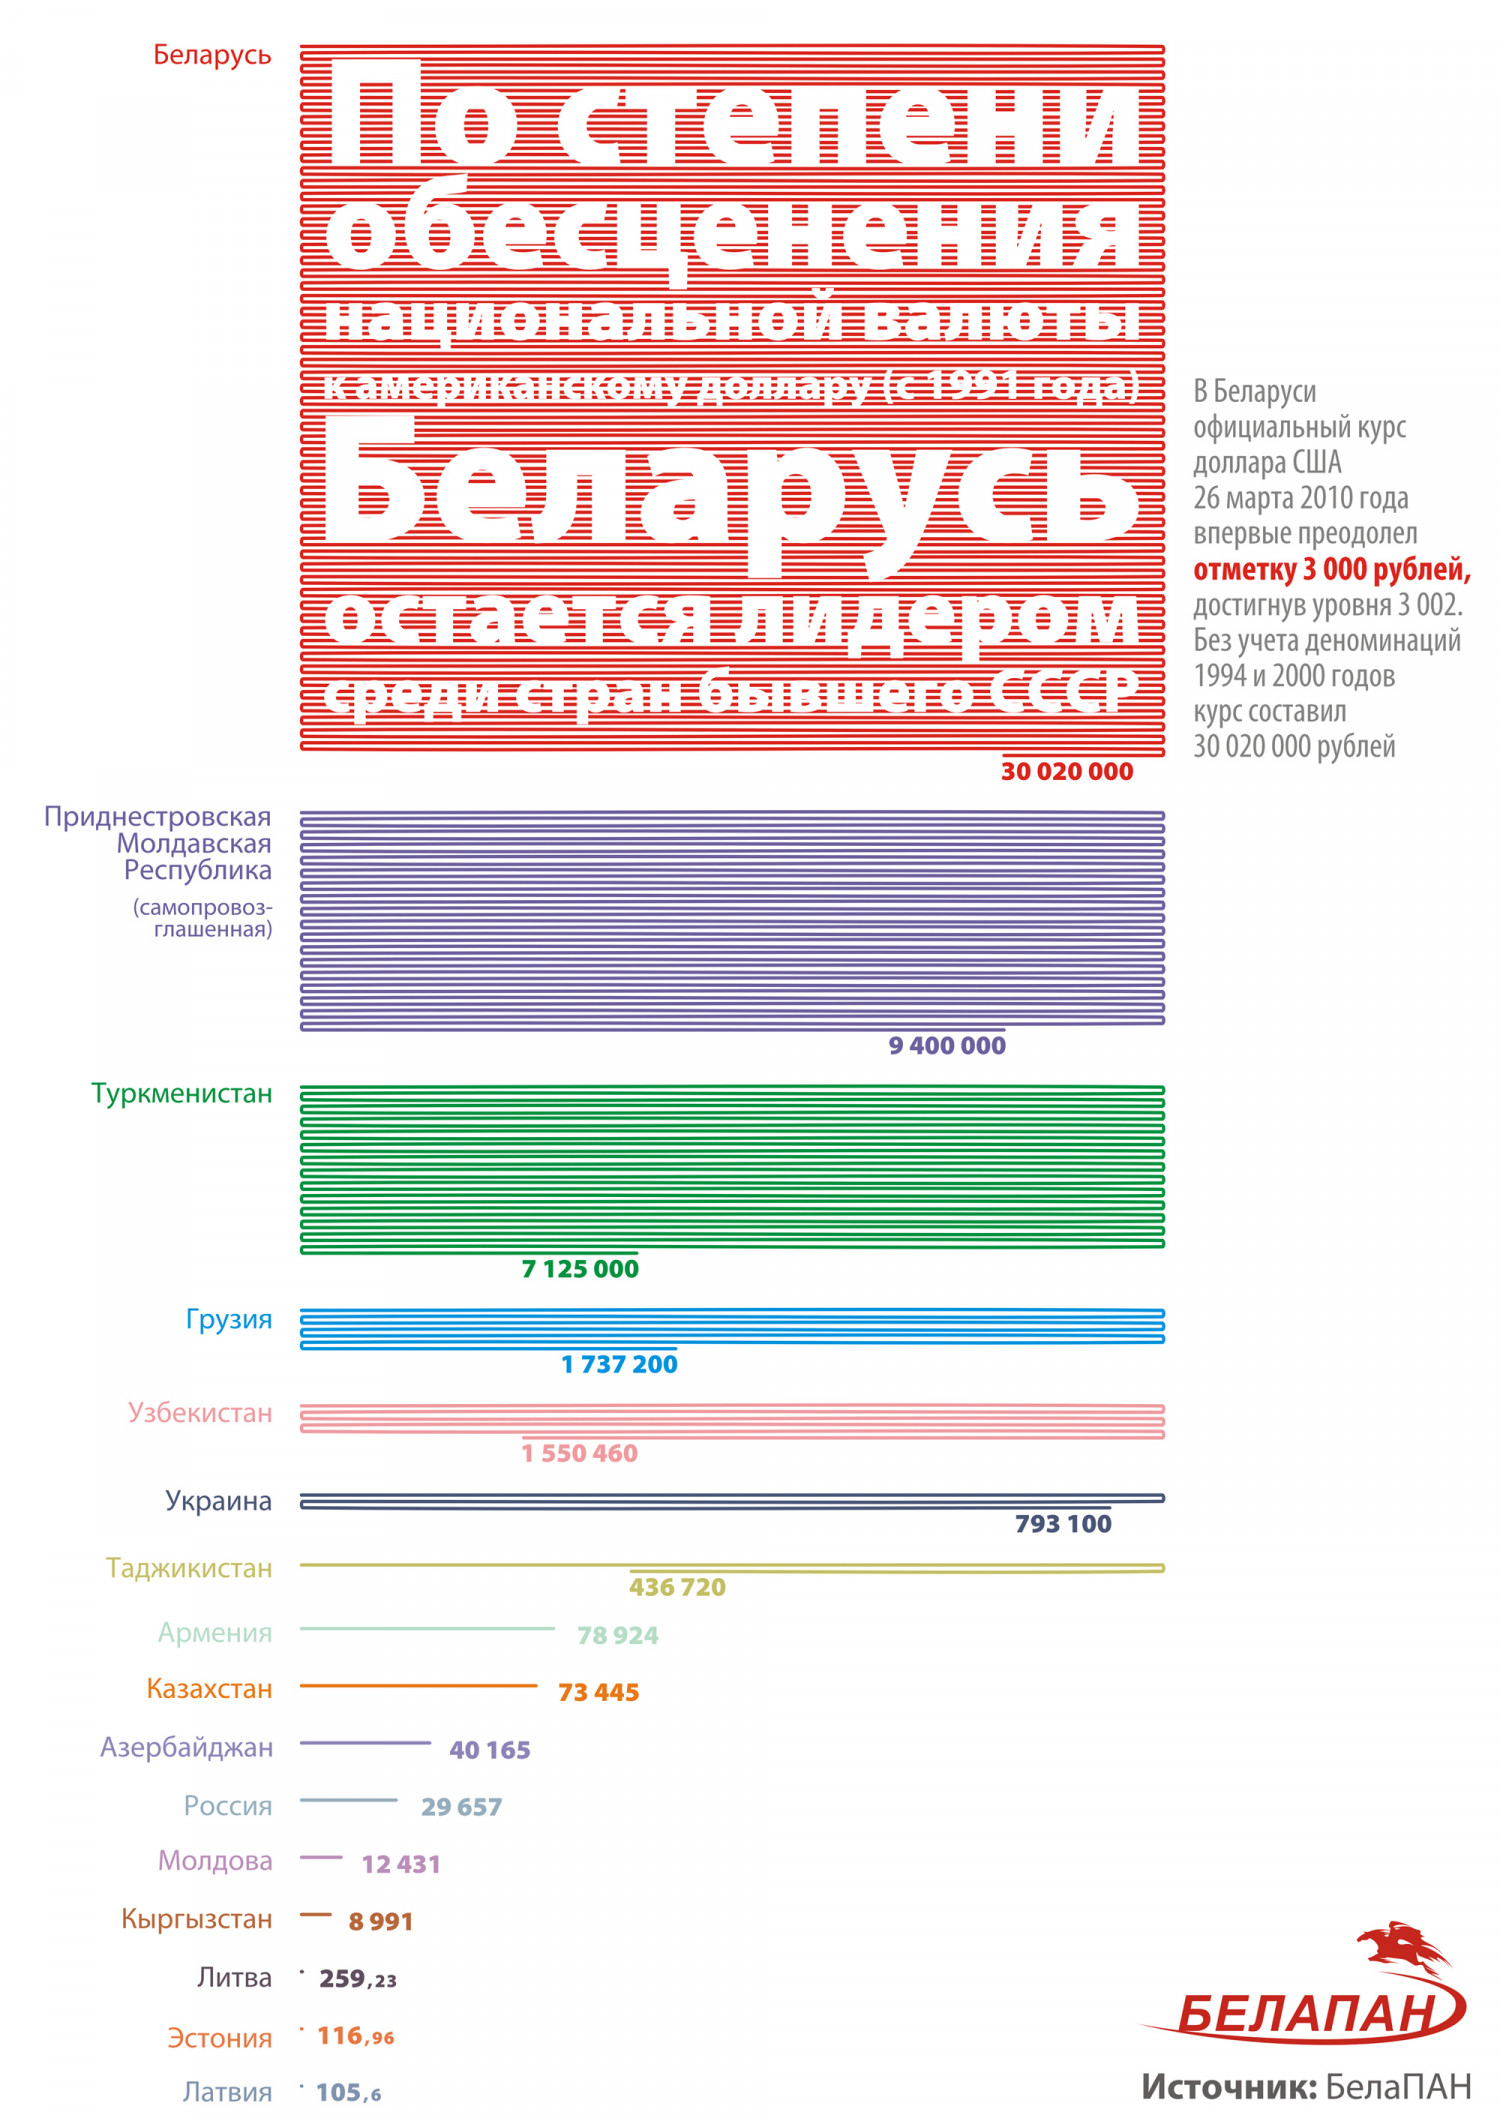 Belarus is a Leader in former USSR Currency Depreciation  Infographic